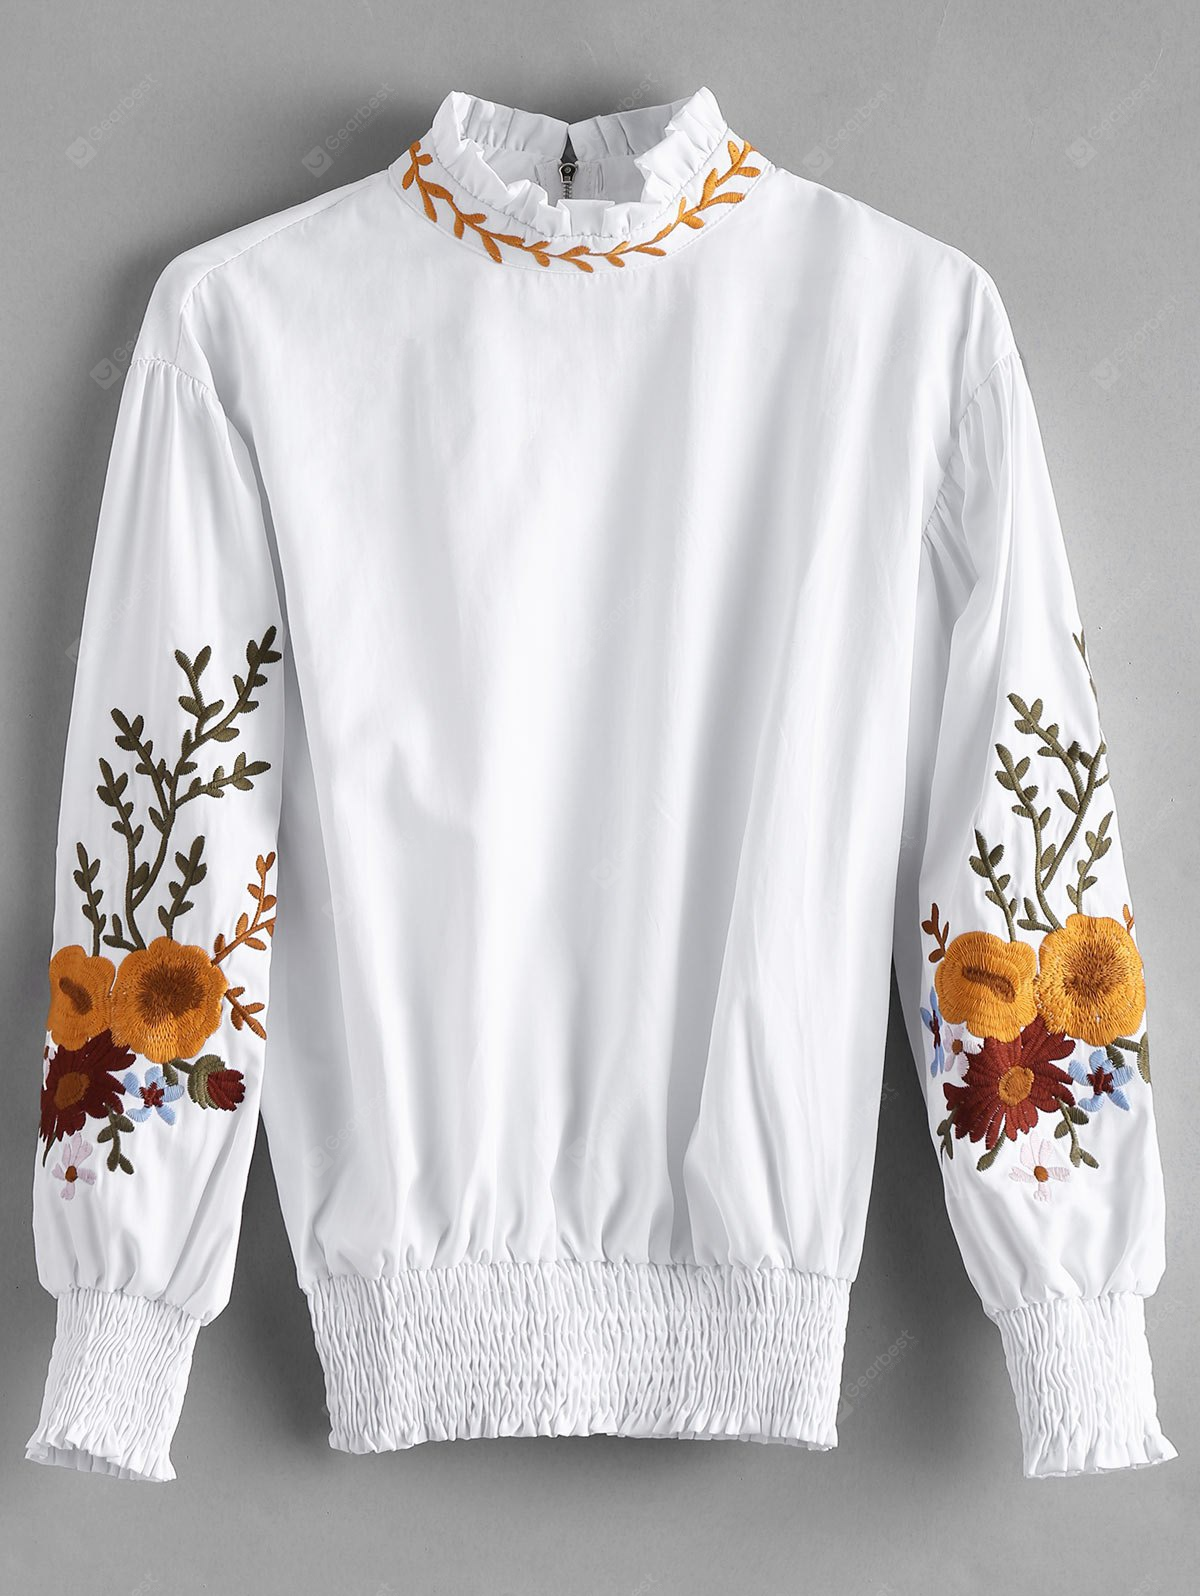 WHITE, Apparel, Women's Clothing, Blouses